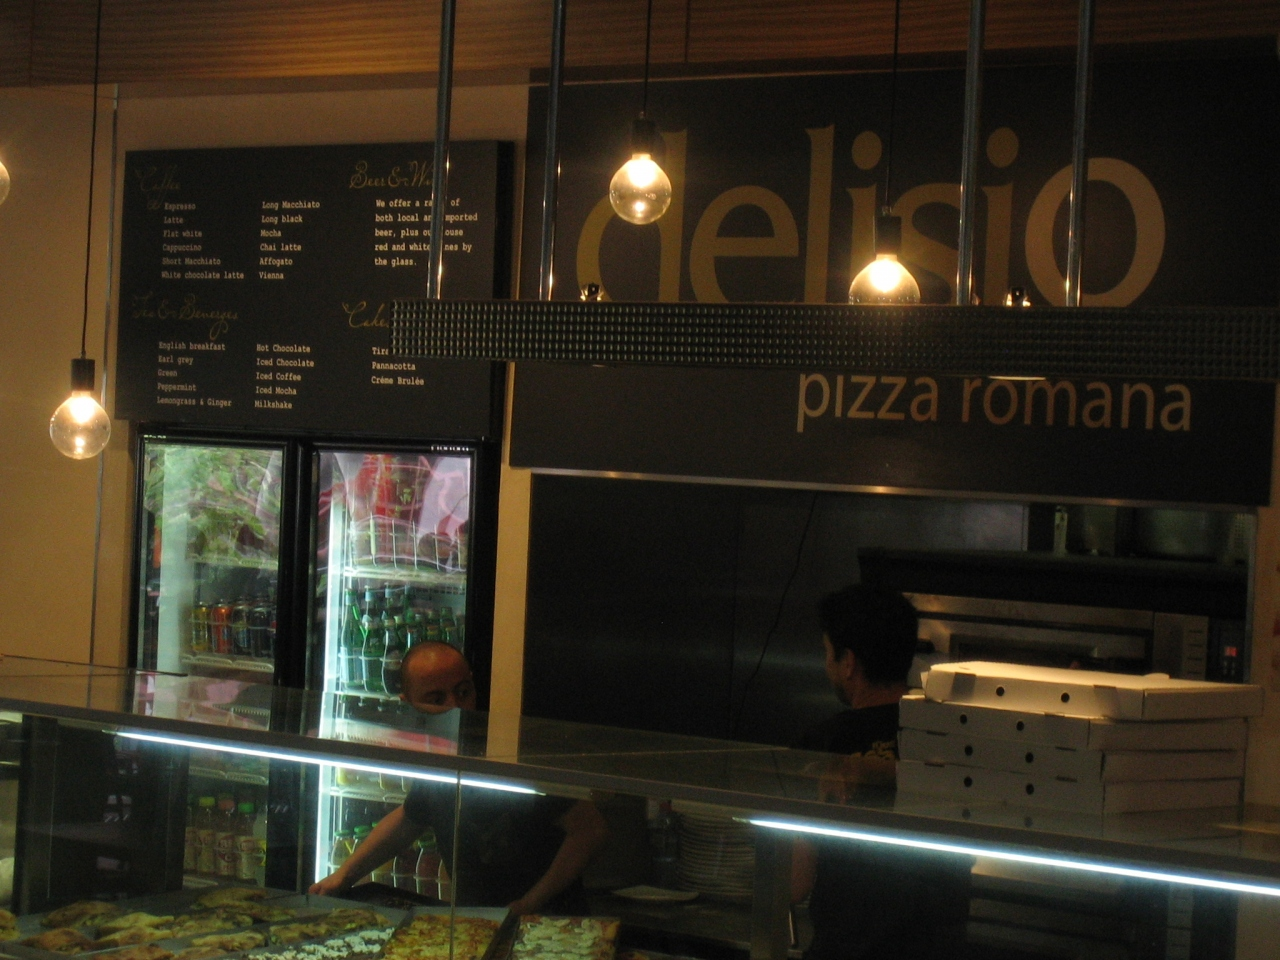 Delisio pizza romano delisio pizza romano for 100 st georges terrace perth wa 6000